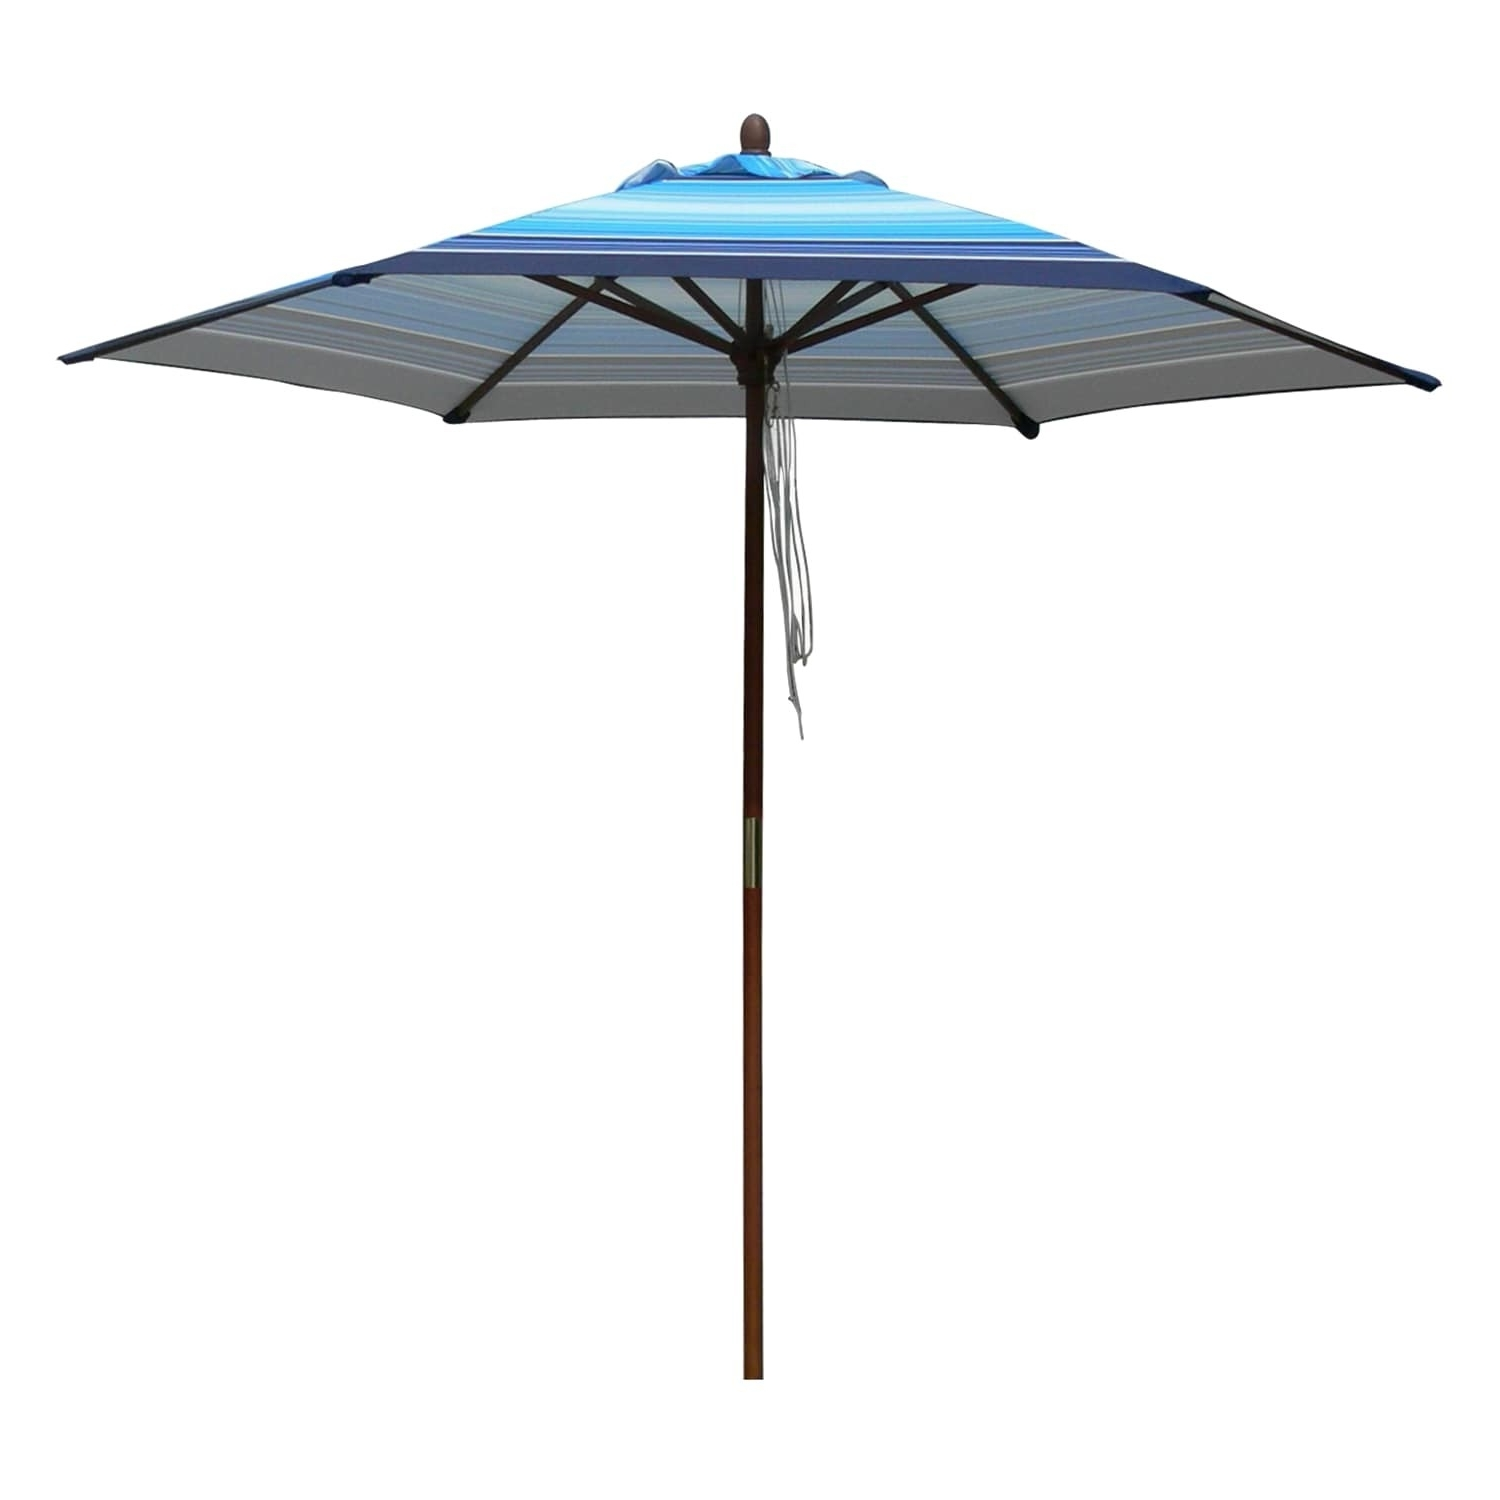 Most Recently Released Striped Outdoor Patio Umbrella Was 120 Now 20 75 Shipped Ac At Kohls Regarding Kohls Patio Umbrellas (View 12 of 20)